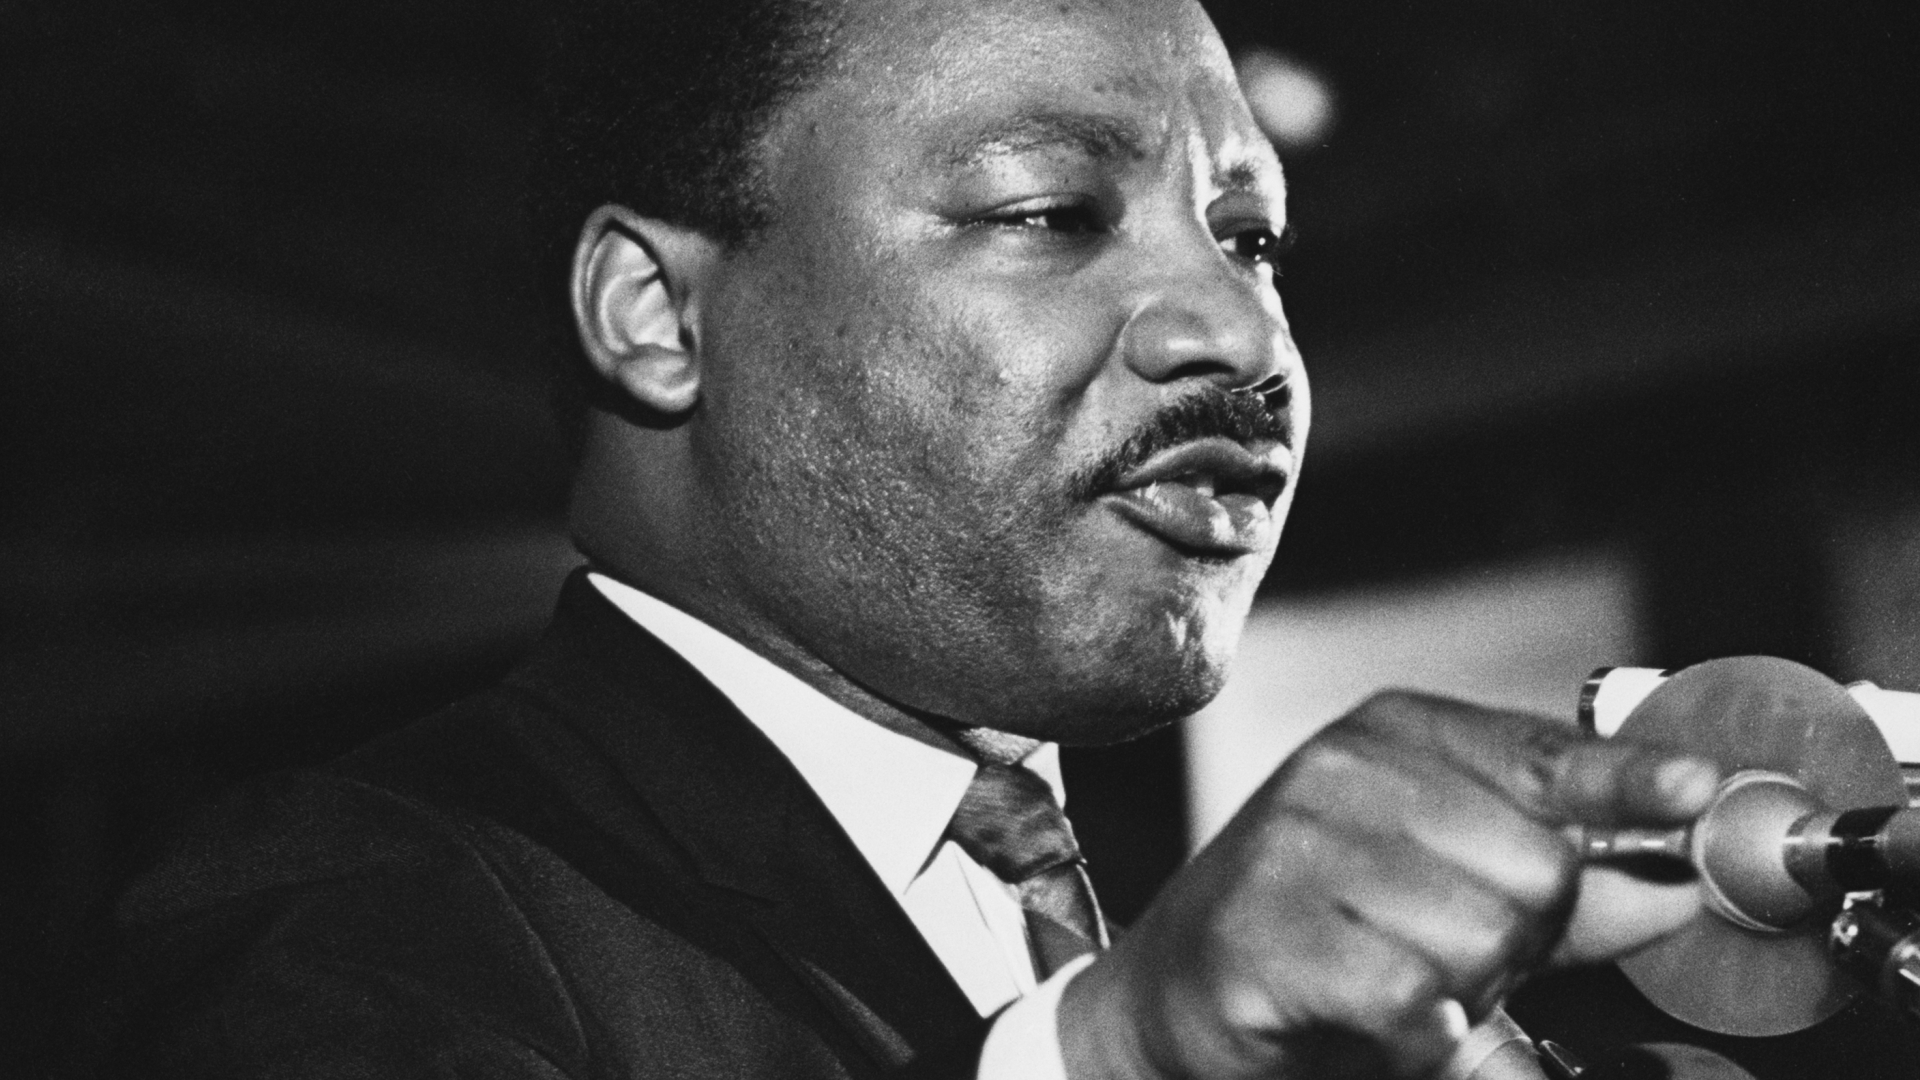 essay on martin luther king junior Reverend martin luther king jr martin luther king was born on january 15, 1929 as michael luther king but changed his name to martin in 1934 king was brought up in a morally wealthy family as his grandfather and father both served as pastors.